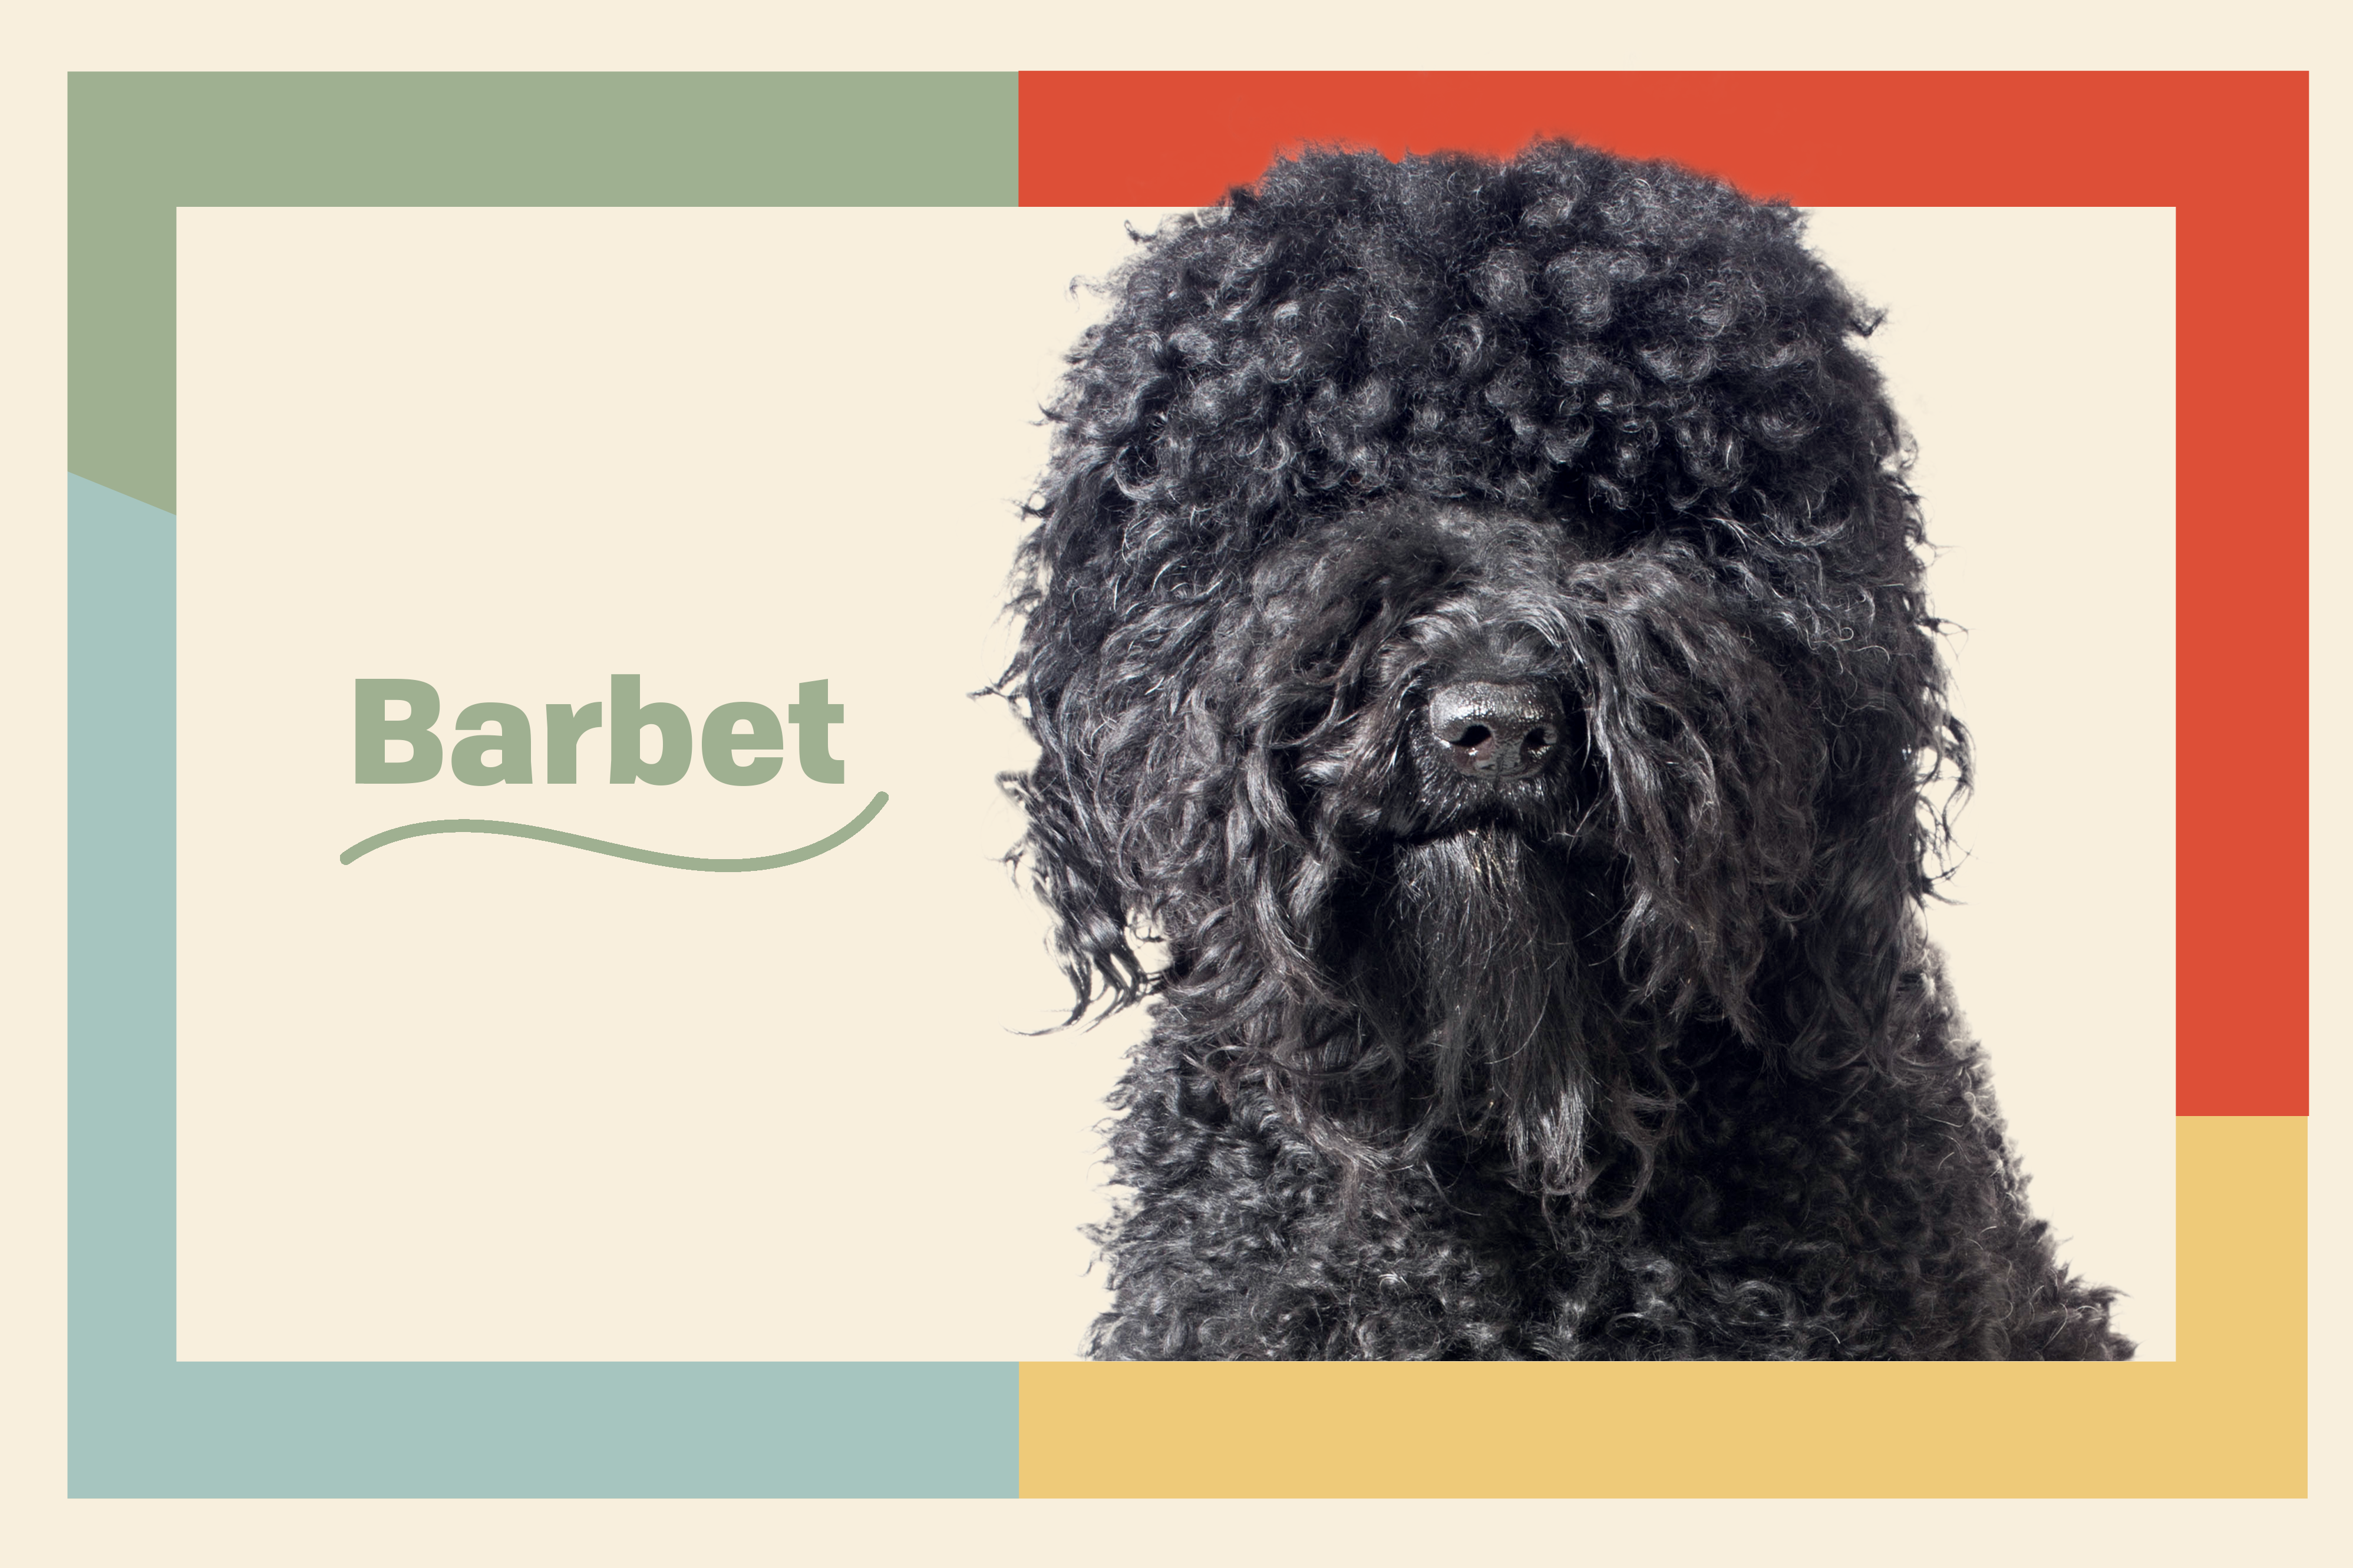 barbet dog breed profile treatment black dog with tan background